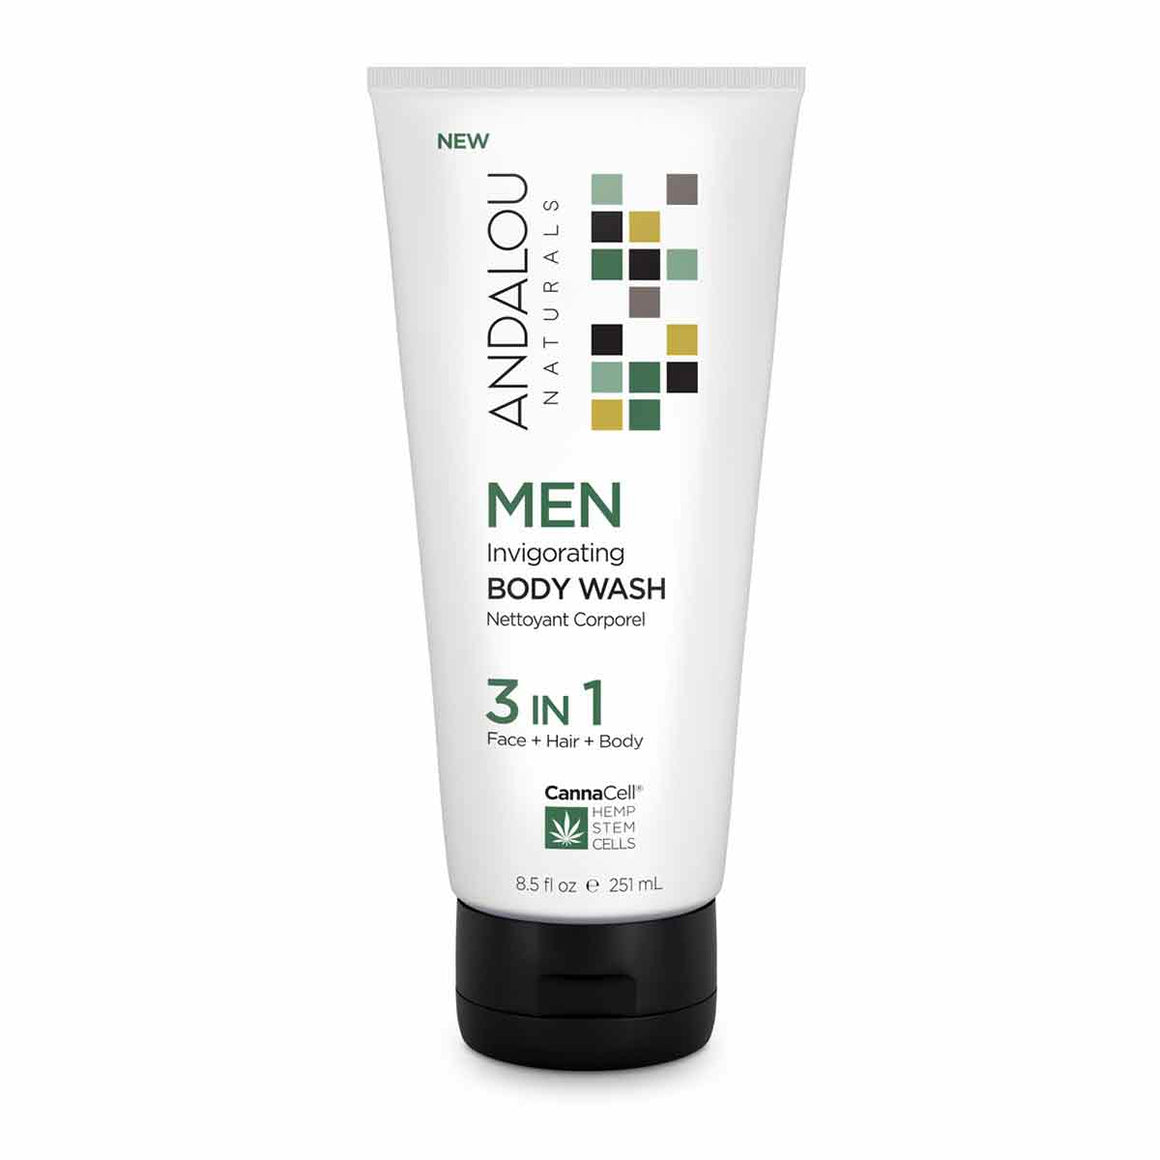 MEN Invigorating Body Wash 3 IN 1